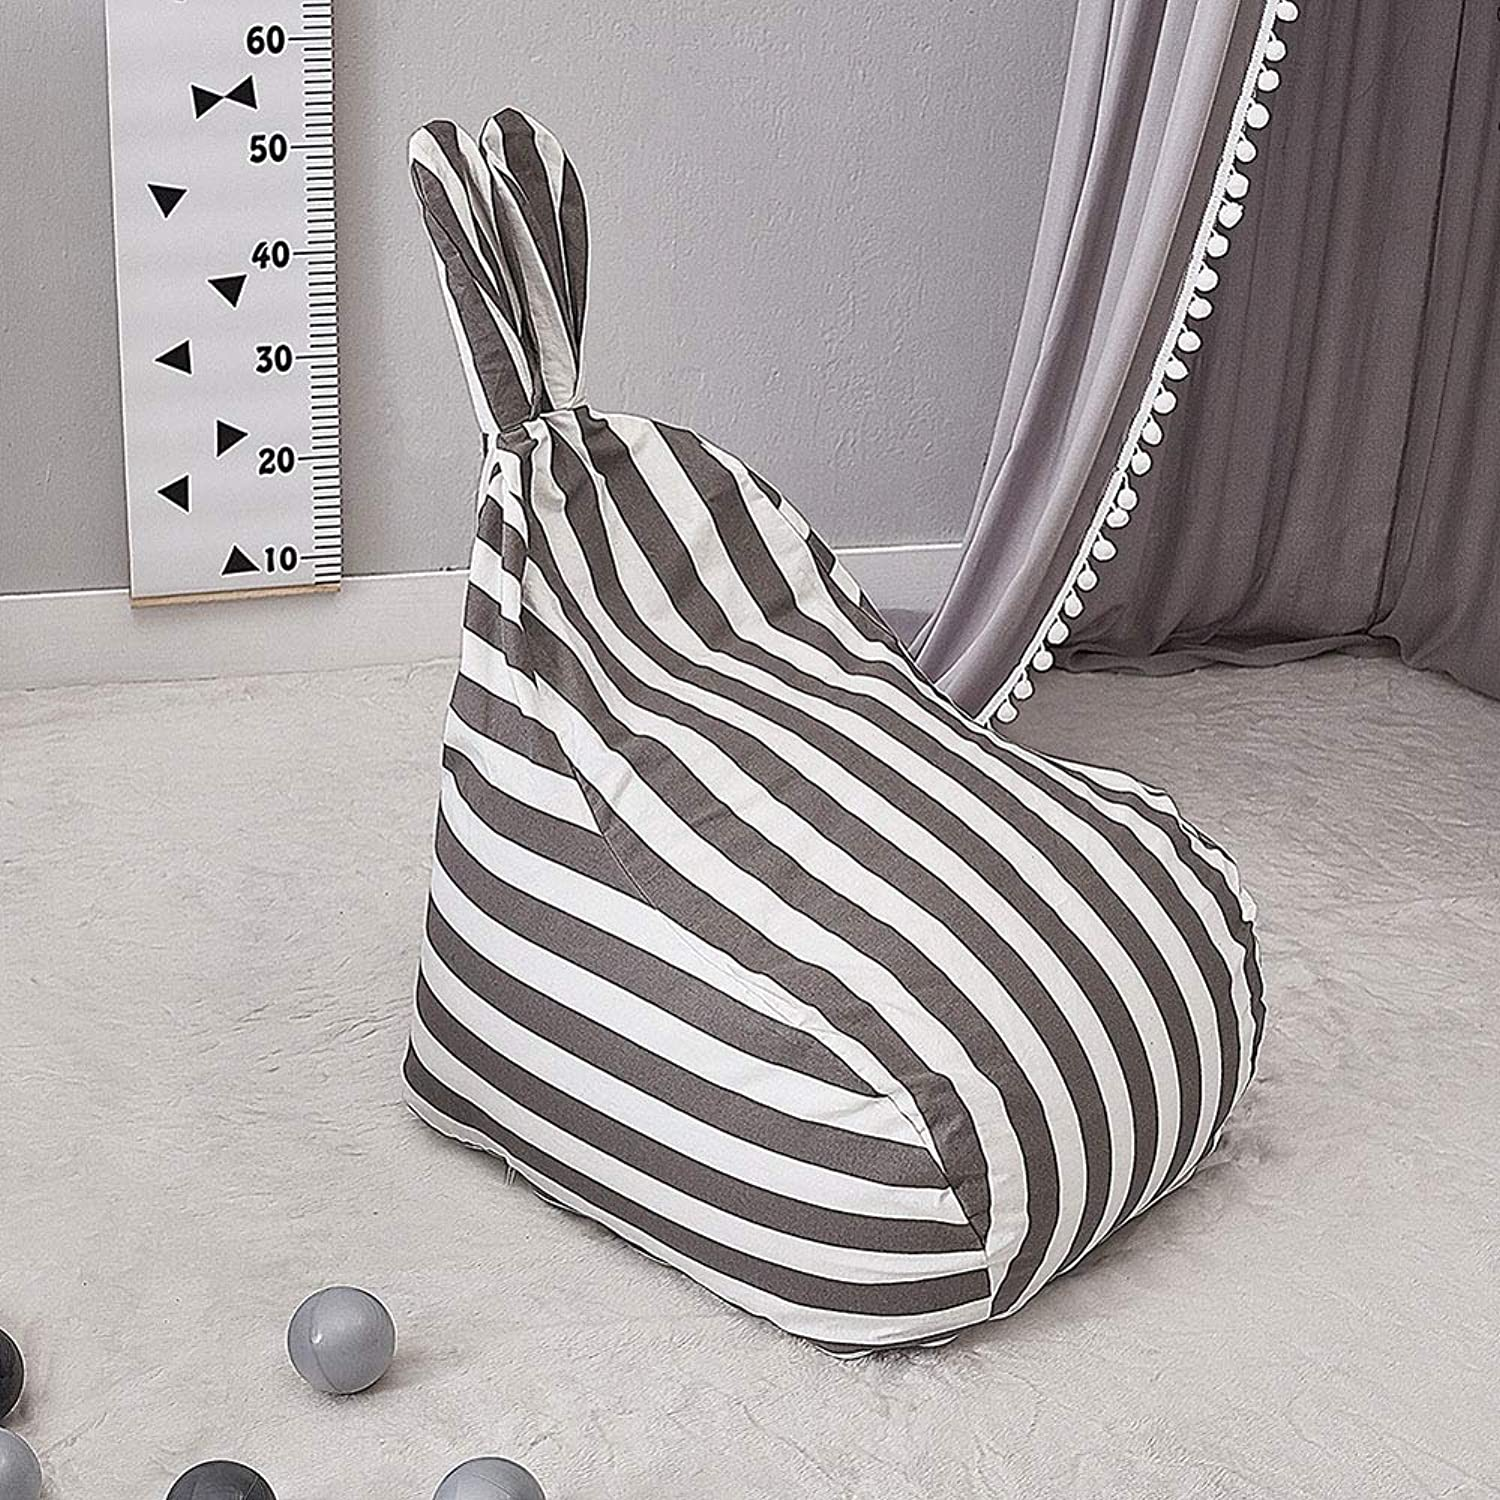 Bean Bag Chair Fun Furniture for boy and Girl Playroom Bedroom or Garden Cute Rabbit Seat Kid's Room Decor